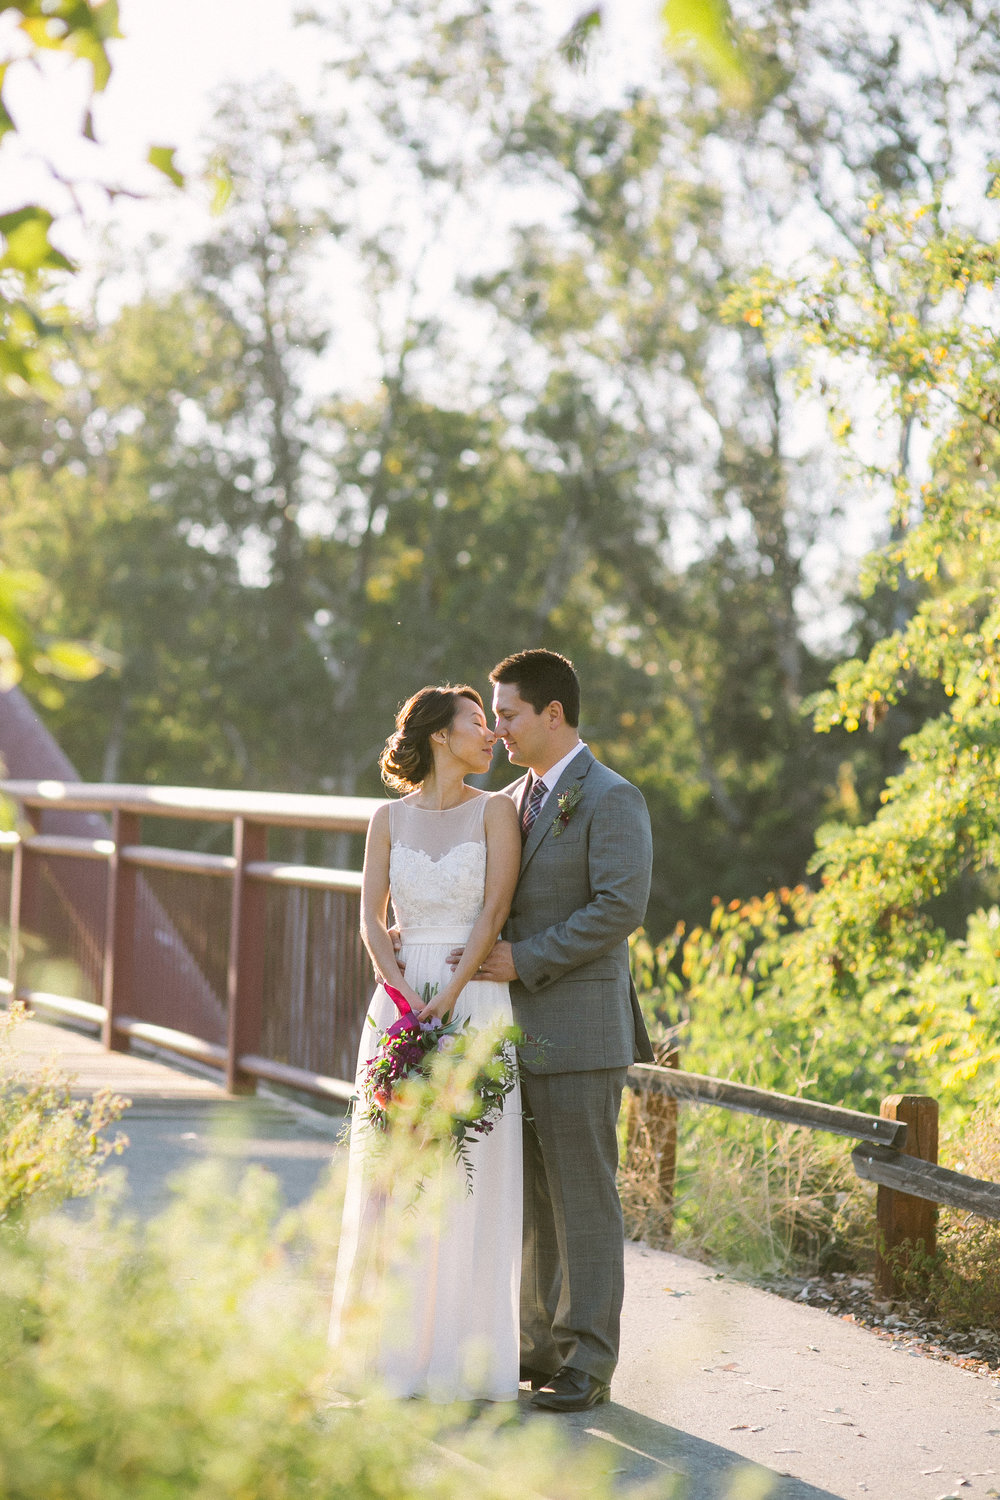 San Jose Wedding Photographer - Michelle Chang Photography